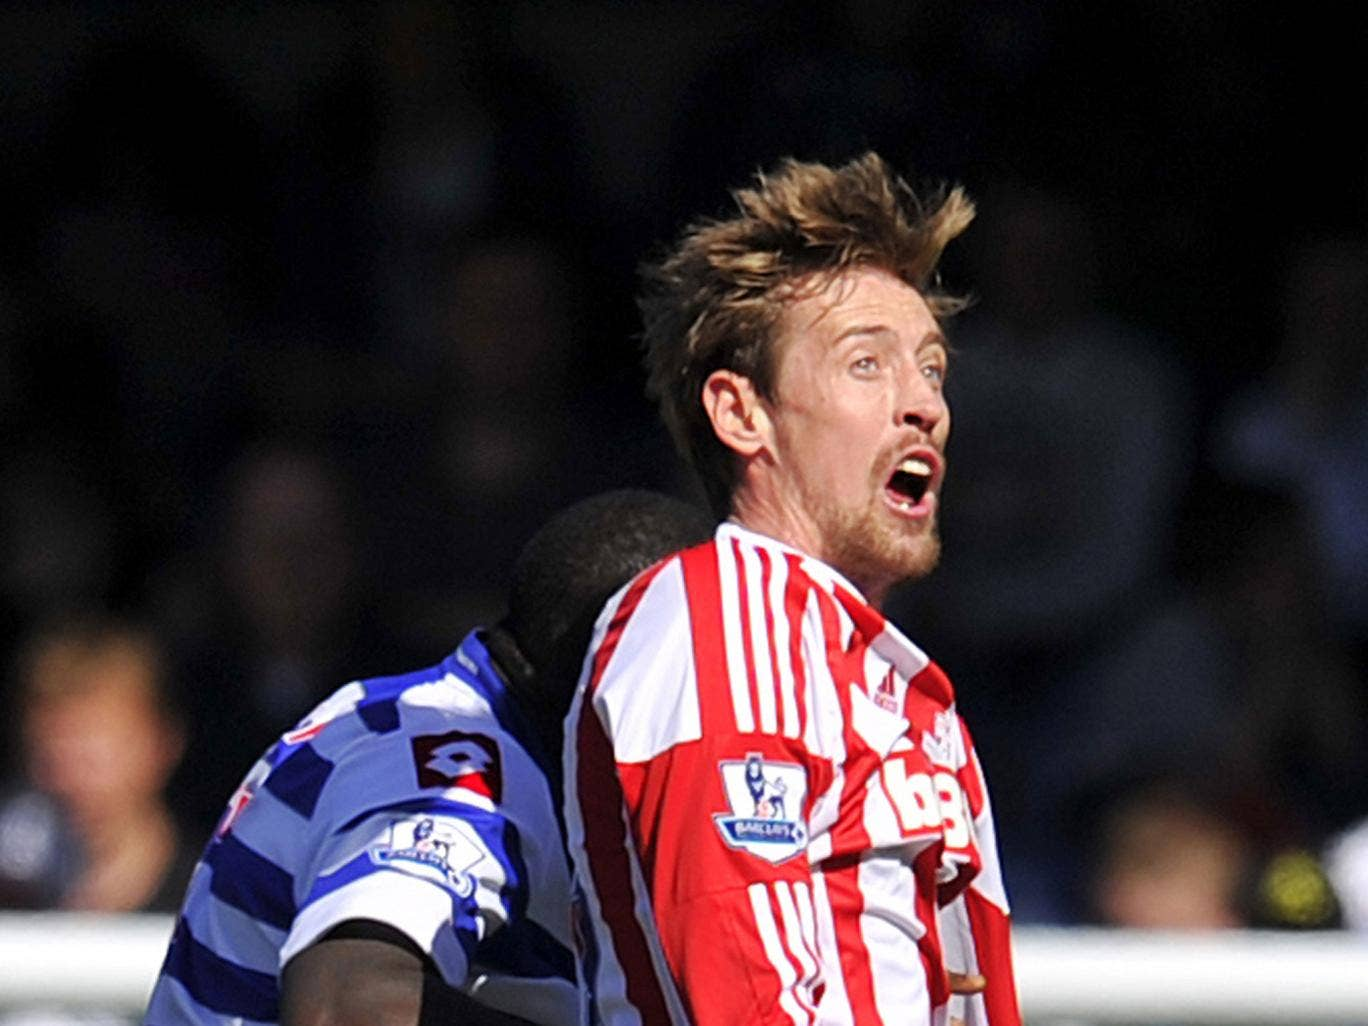 Stoke City want £3m for Peter Crouch - but West Ham are offering a third of that